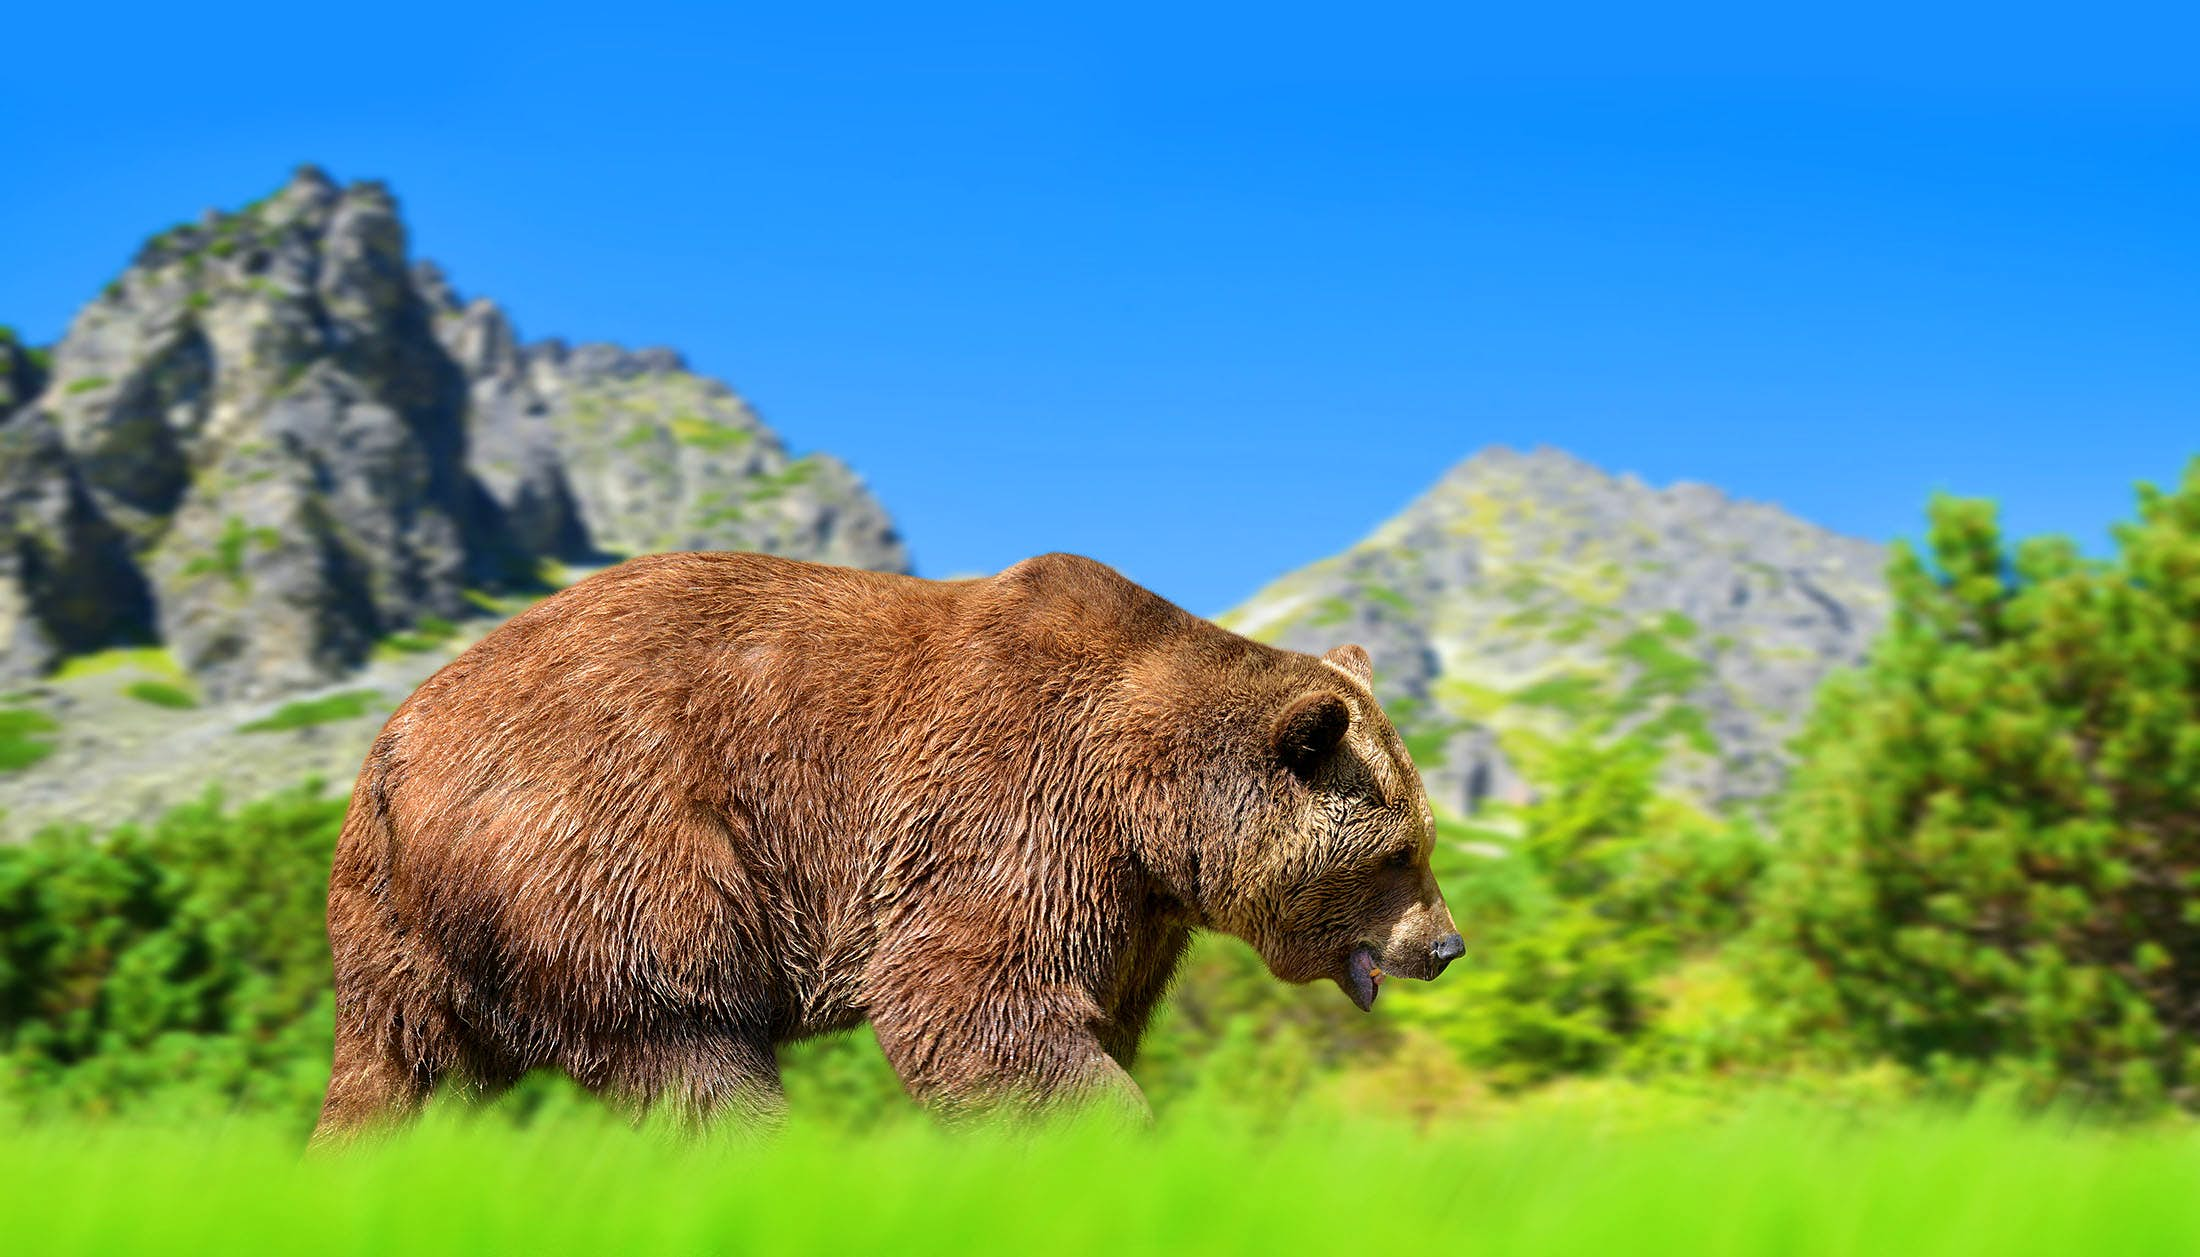 Travel News - Brown bear in mountain landscape.